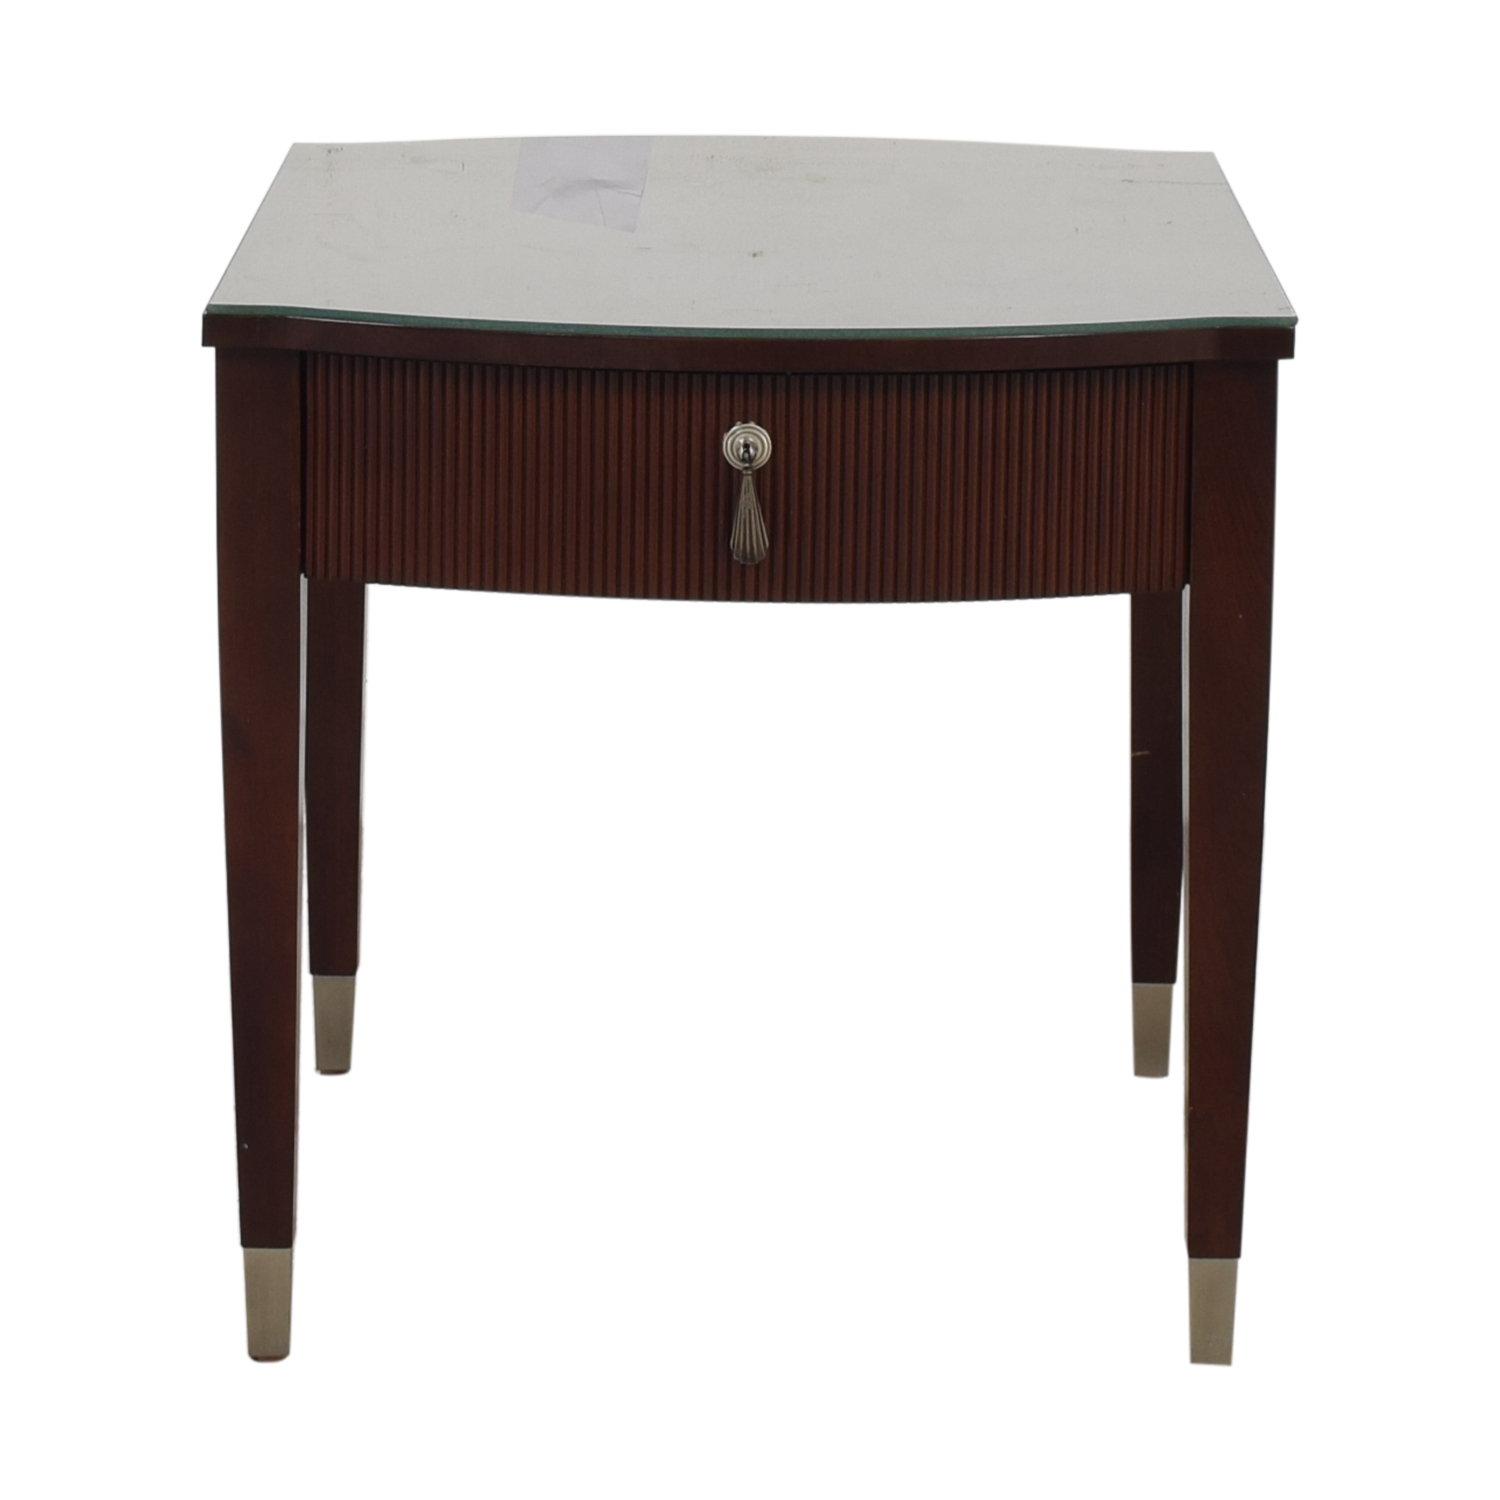 Ethan Allen Ethan Allen Avenue Side Table with Drawer dark brown